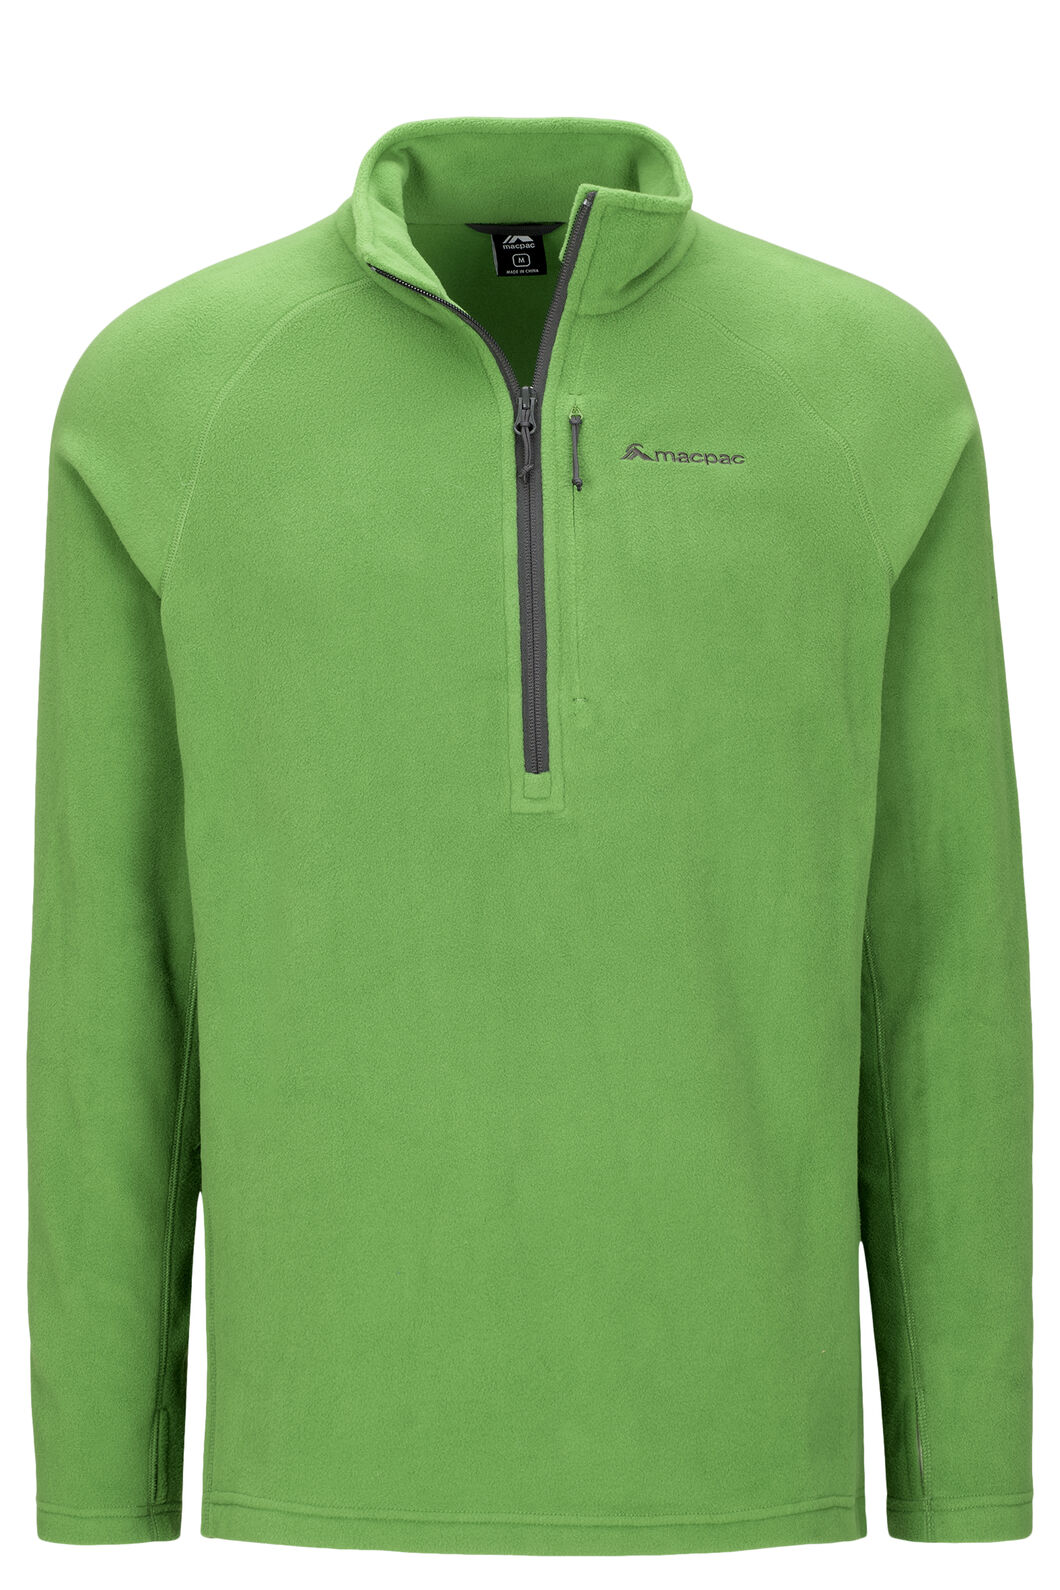 Macpac Tui Polartec® Micro Fleece® Pullover — Men's, Juniper, hi-res